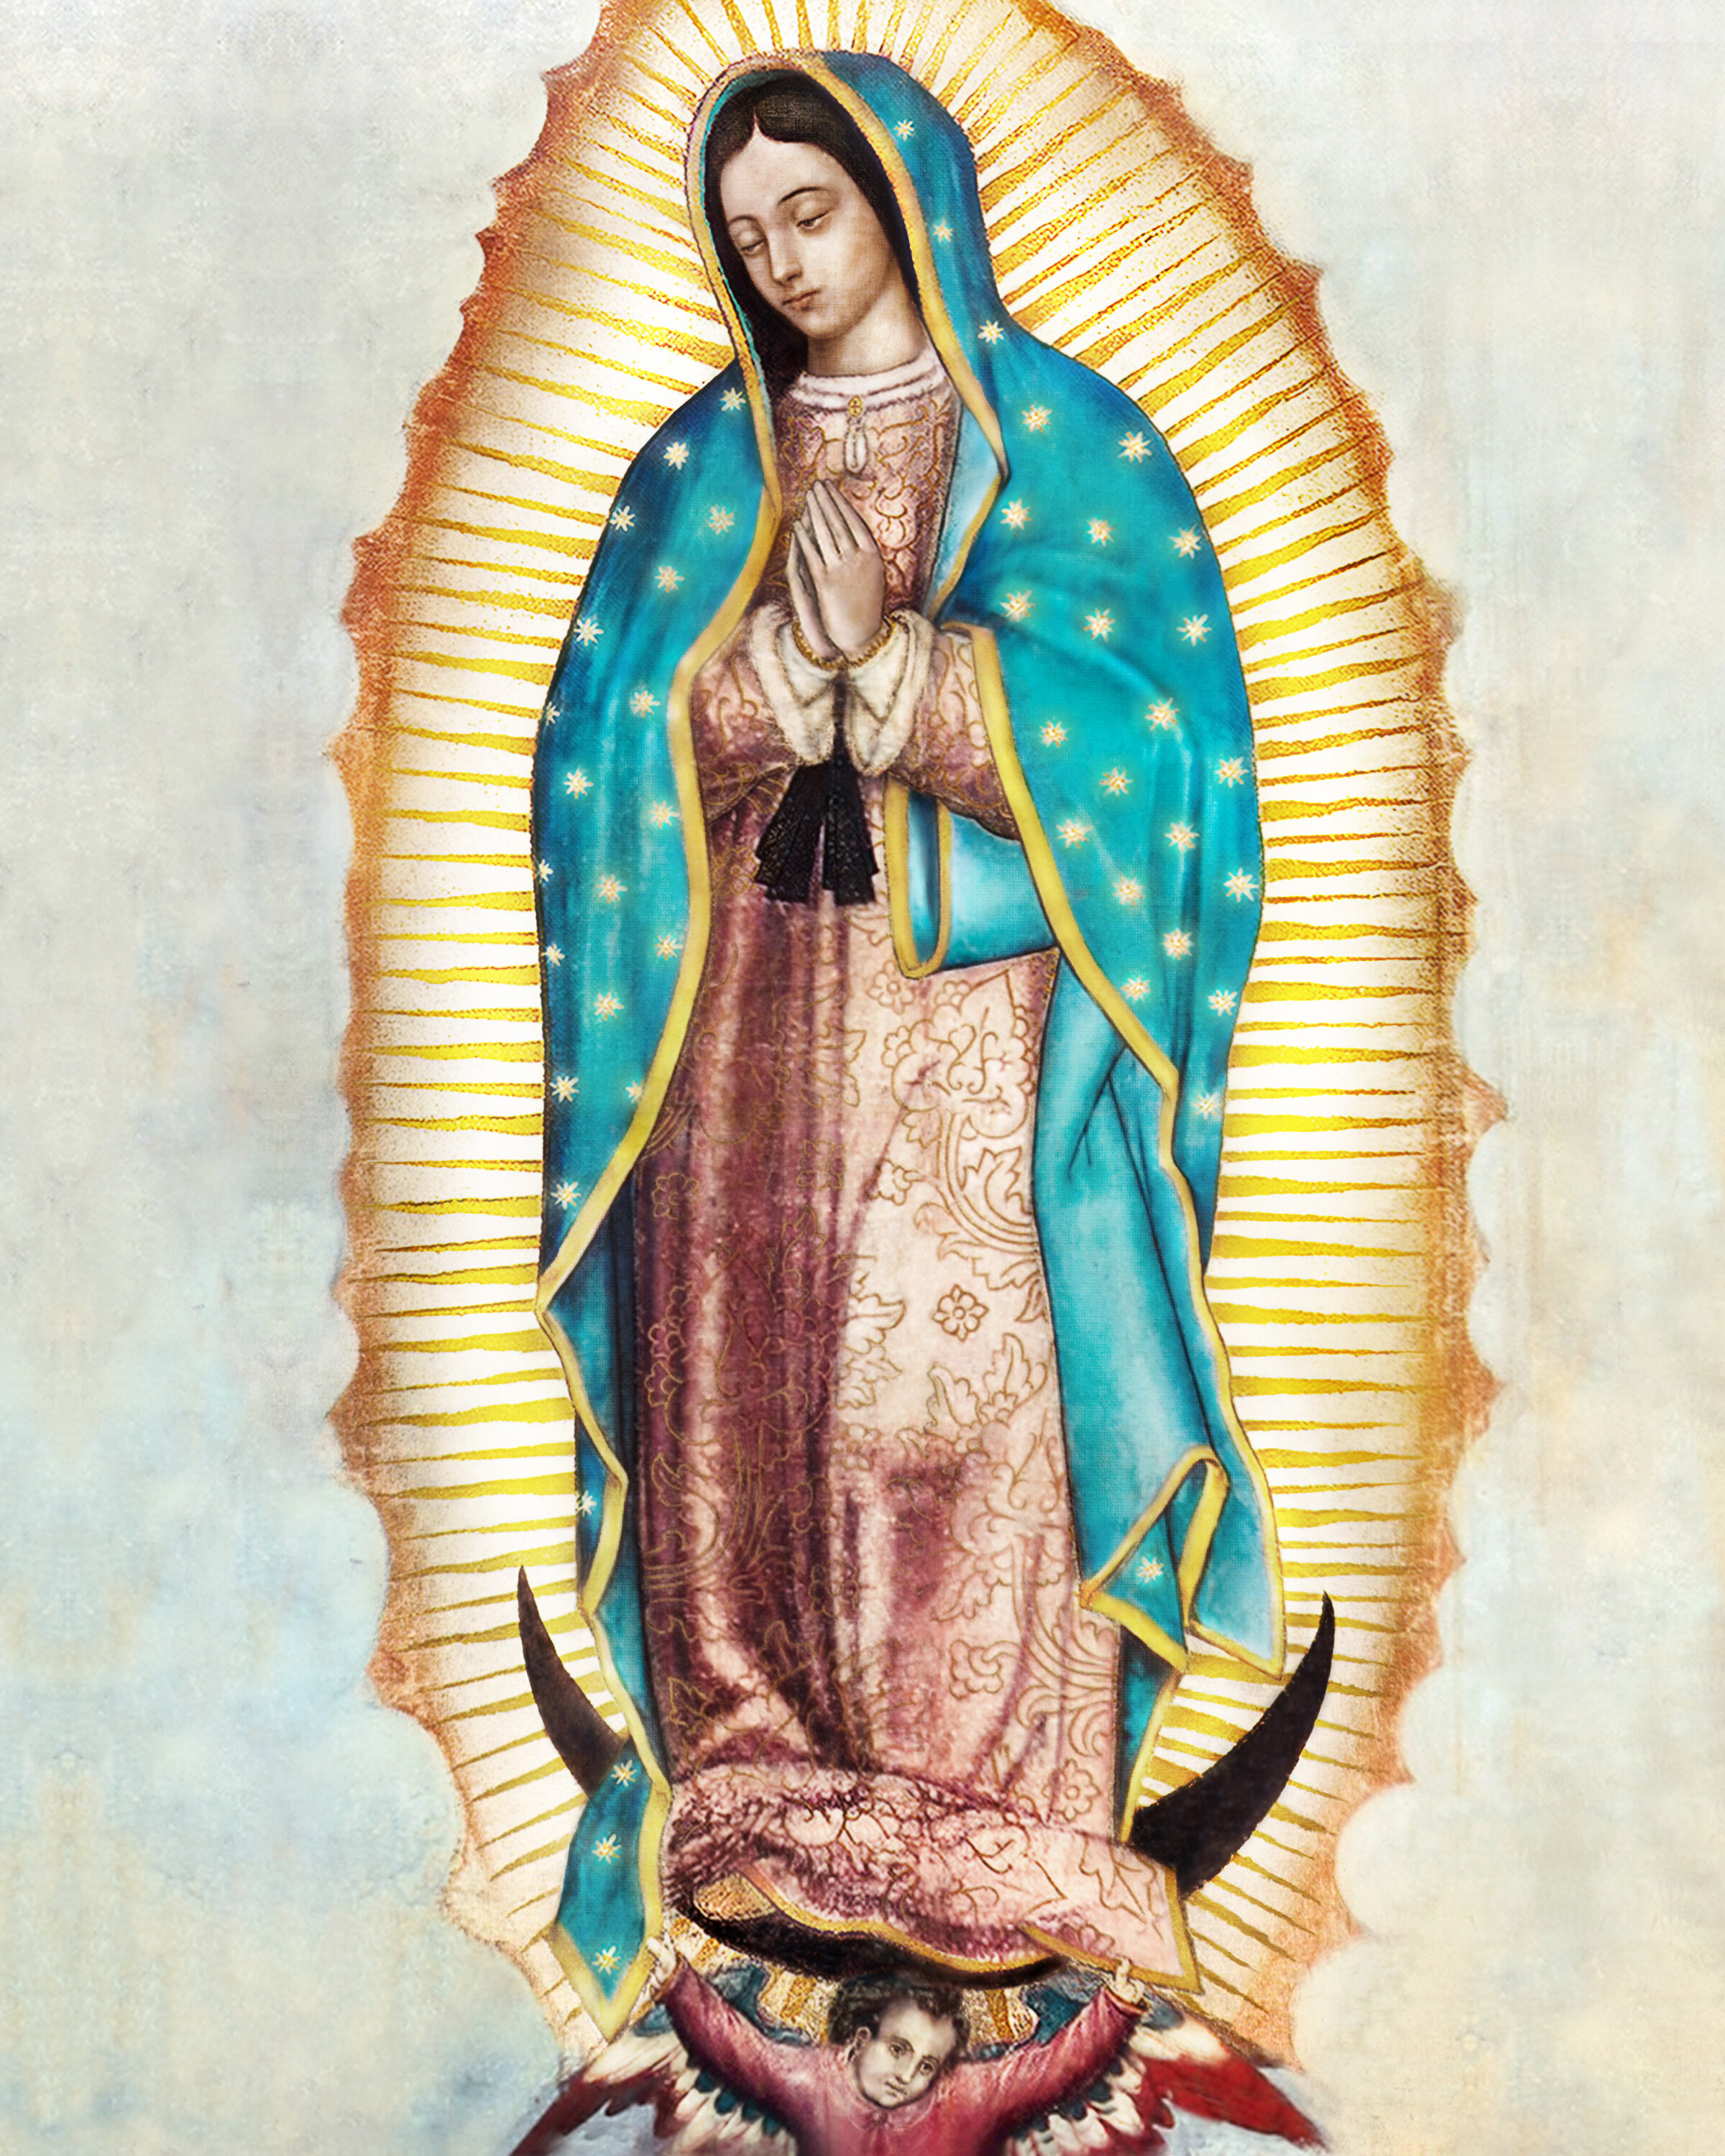 Our-Lady-Of-Guadalupe-Dec-12-lg-web.jpg